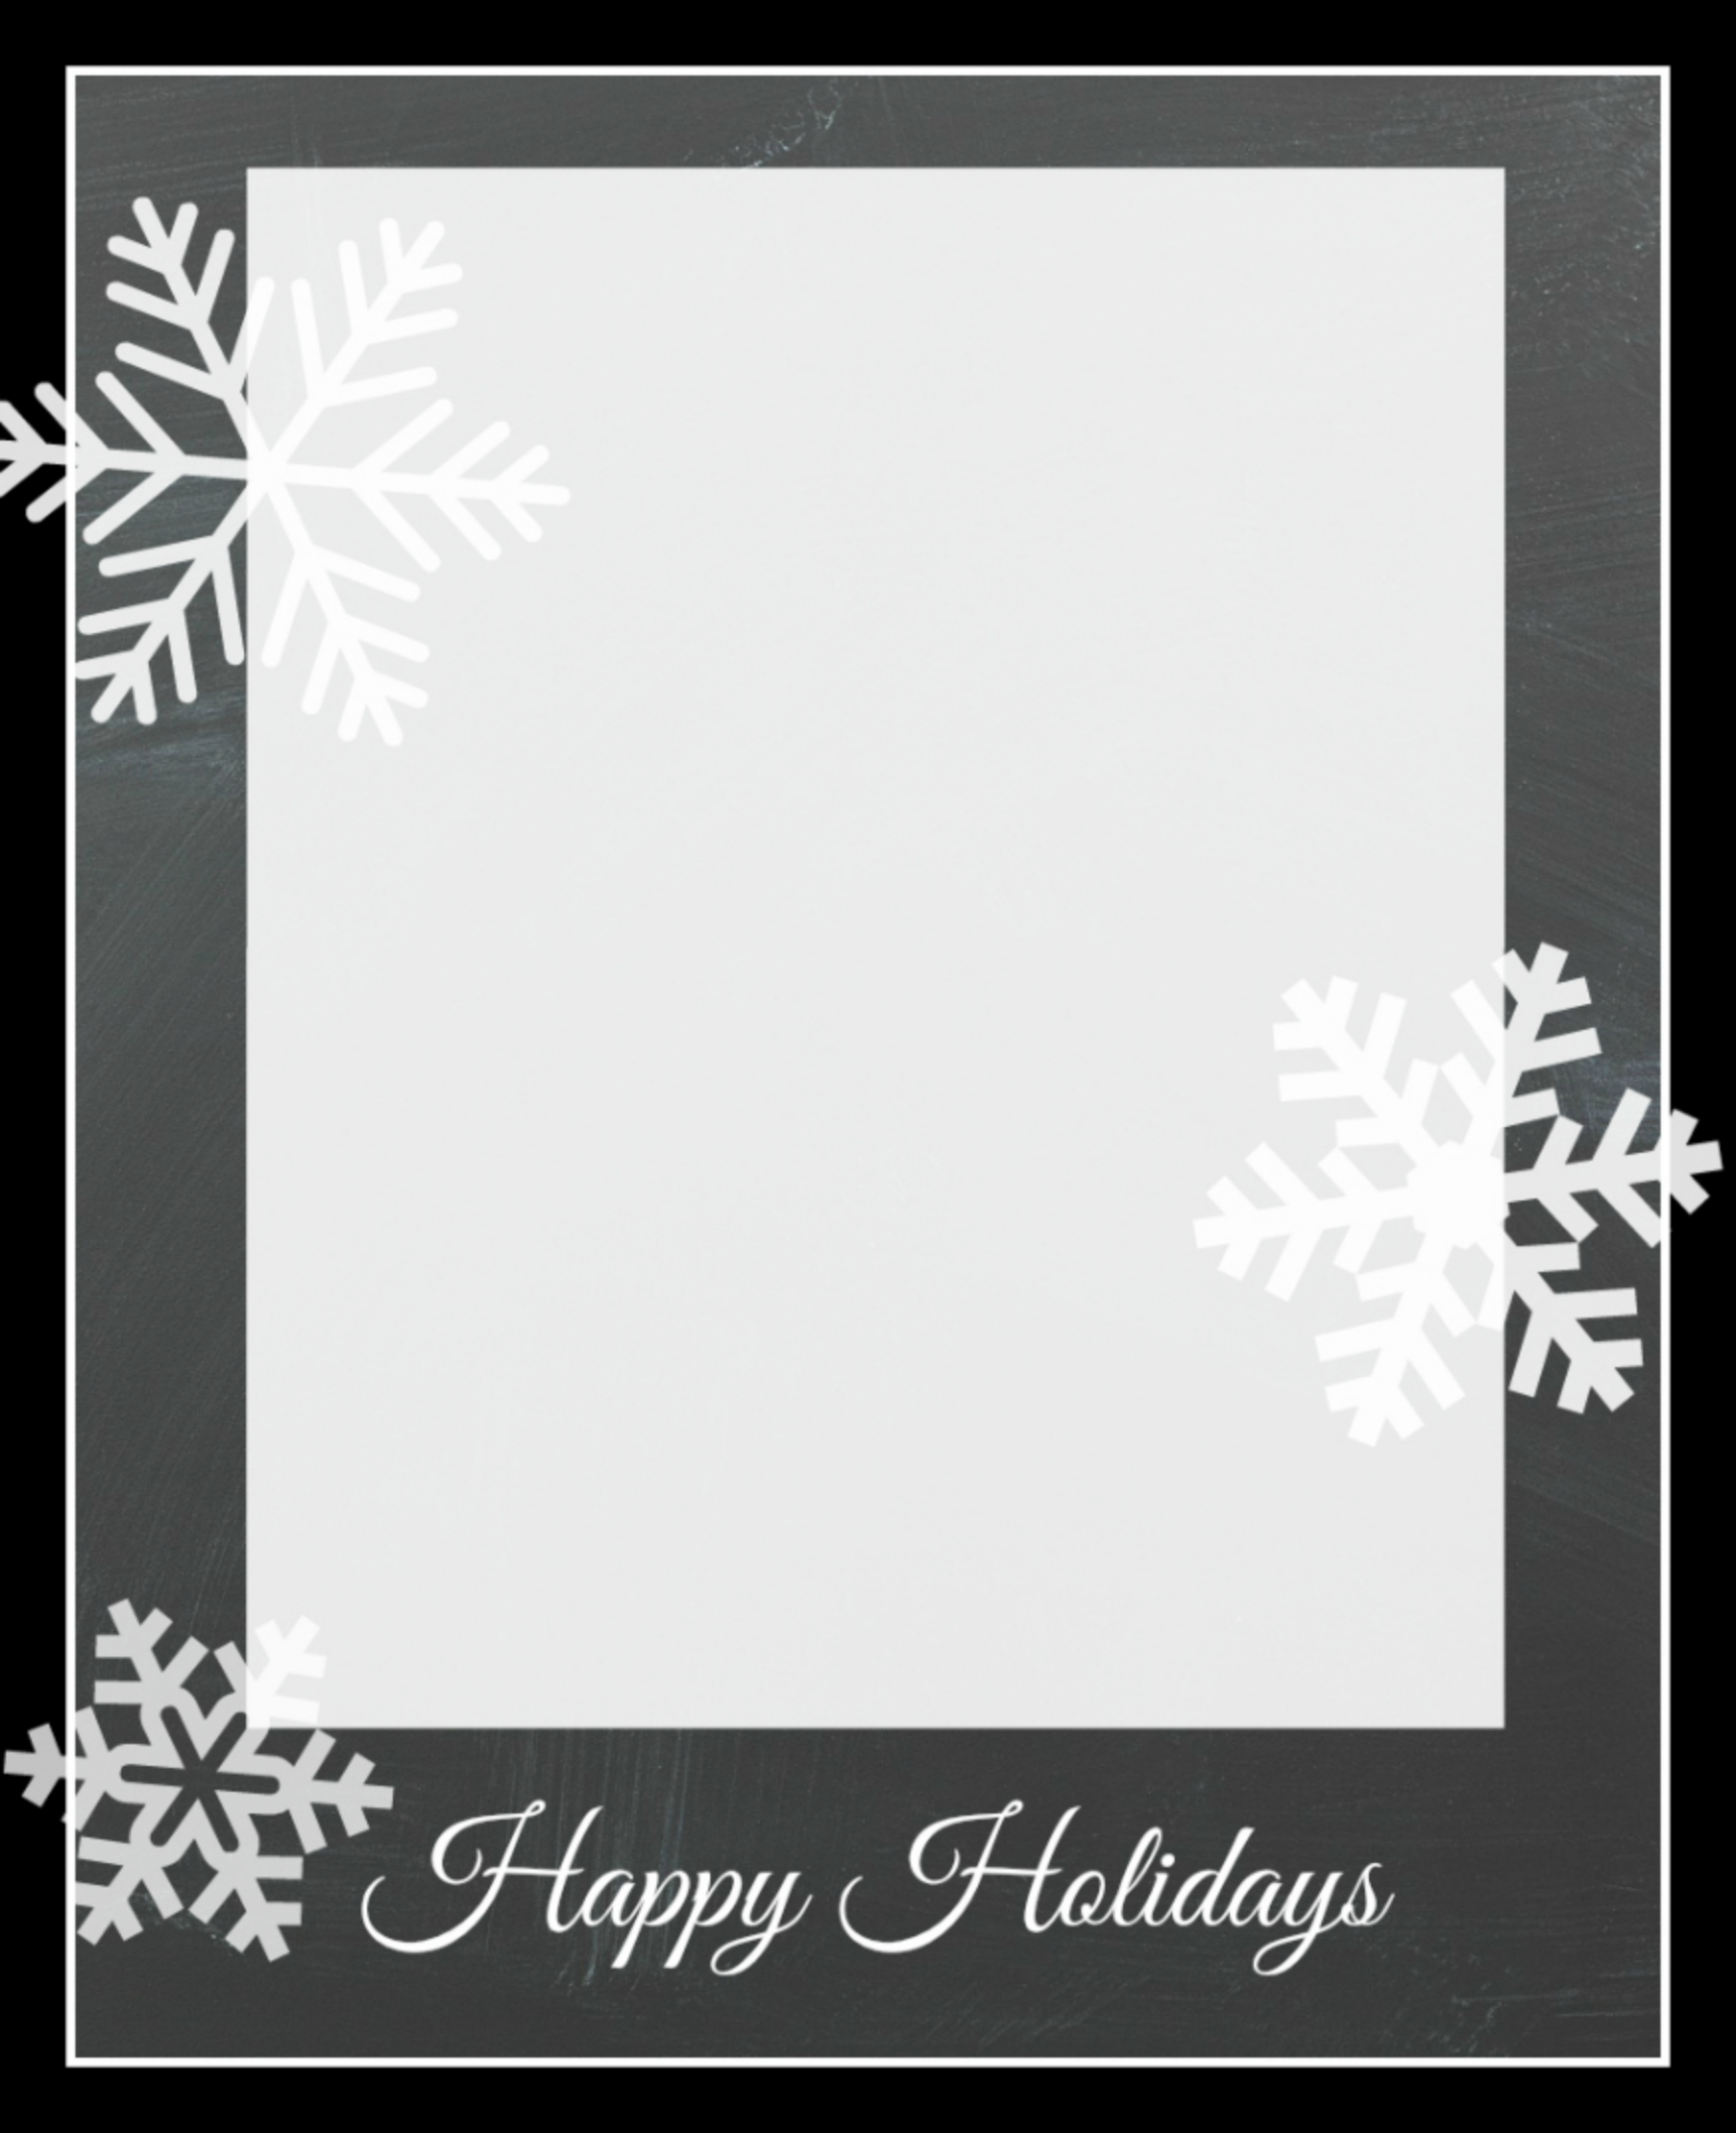 snowflakecard3 another card option free christmas card template